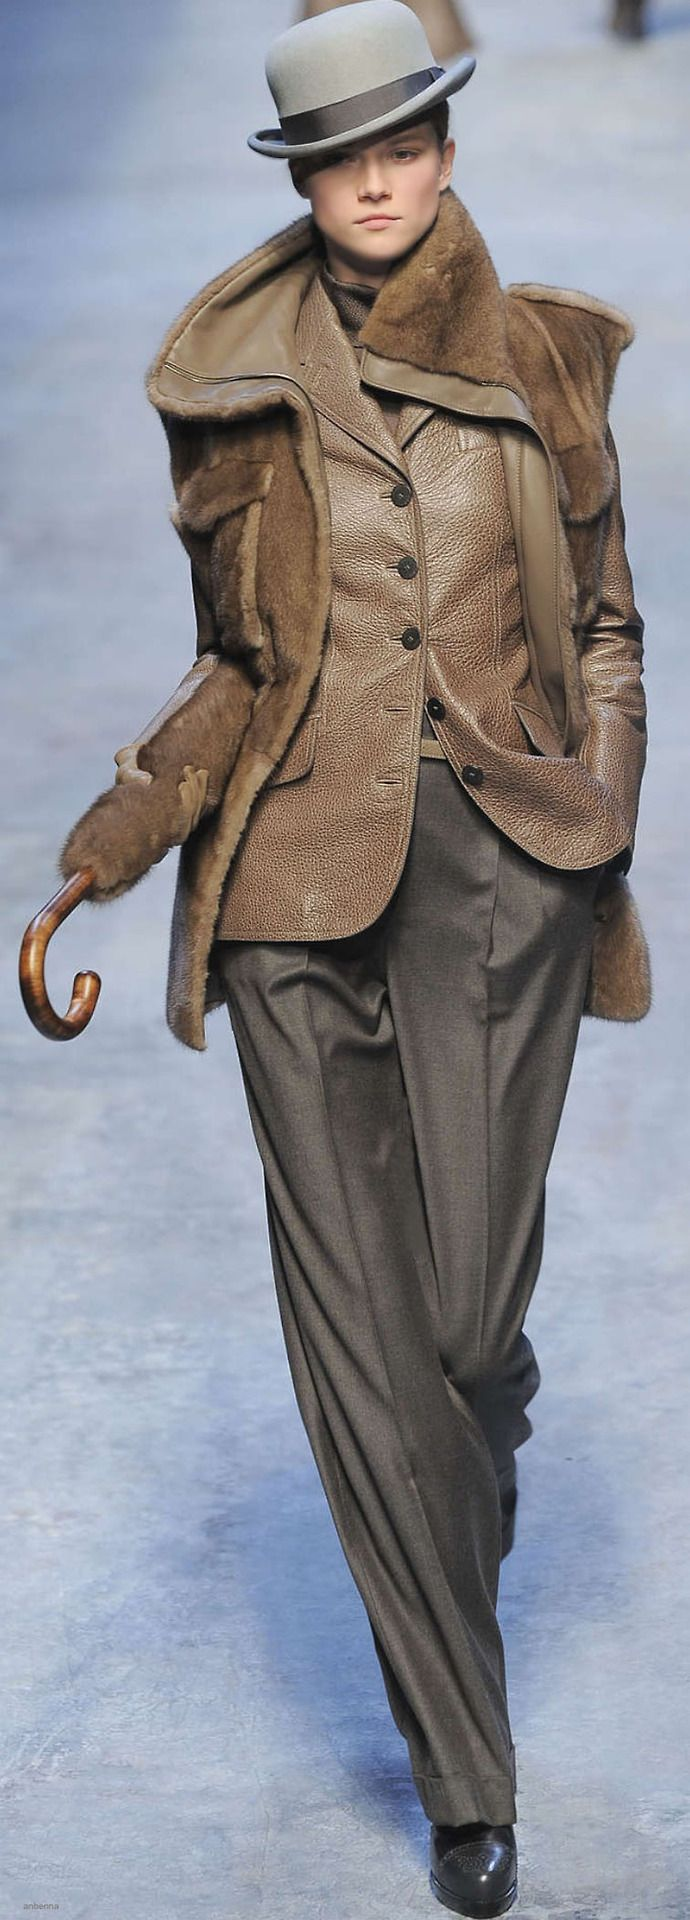 Hermes model has a cane for a hook hand! How thoughtful of the alternatively abled. And fashionable, too!! #OddCameraAngles